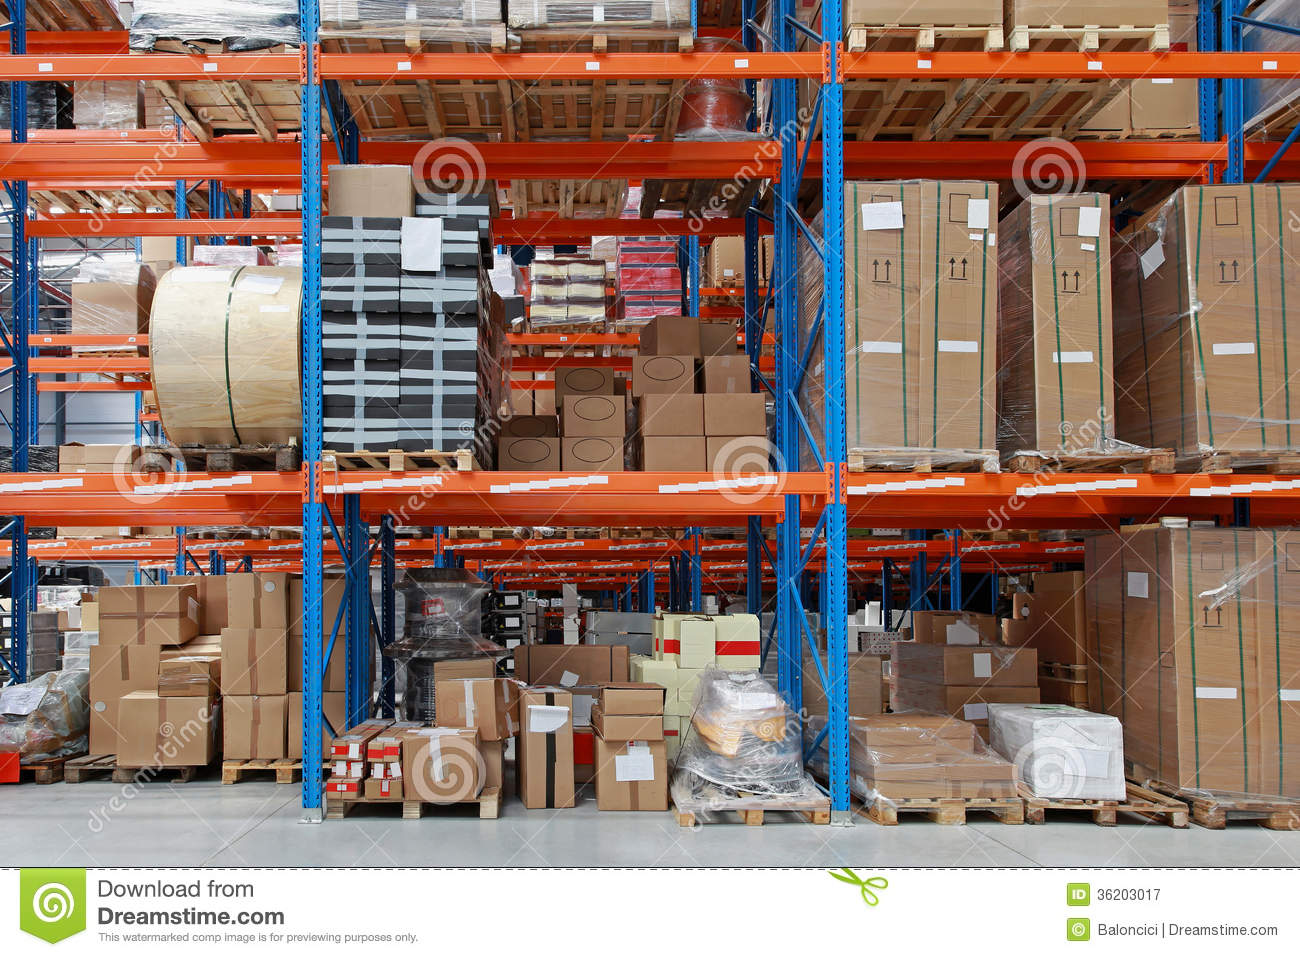 Warehouse royalty free stock photography image 36203017 for Warehouse racking layout software free